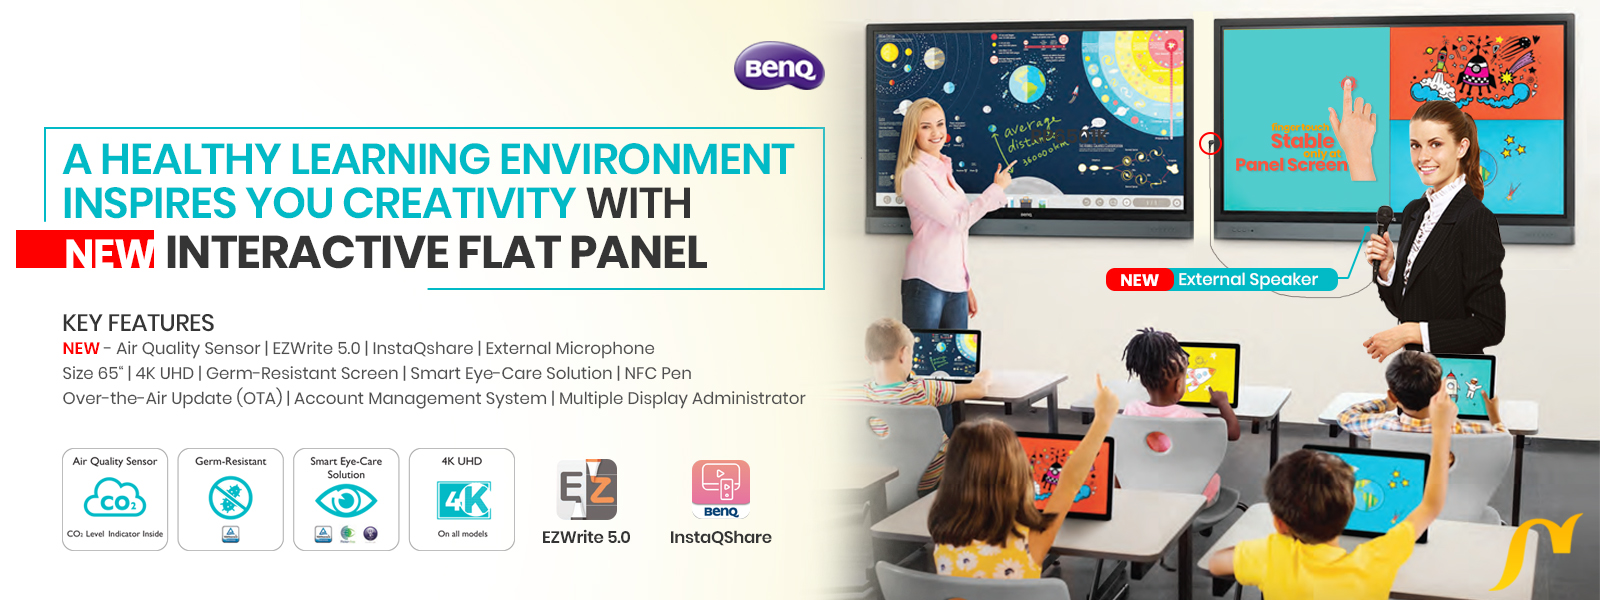 new benq interactive flat panel for education slider